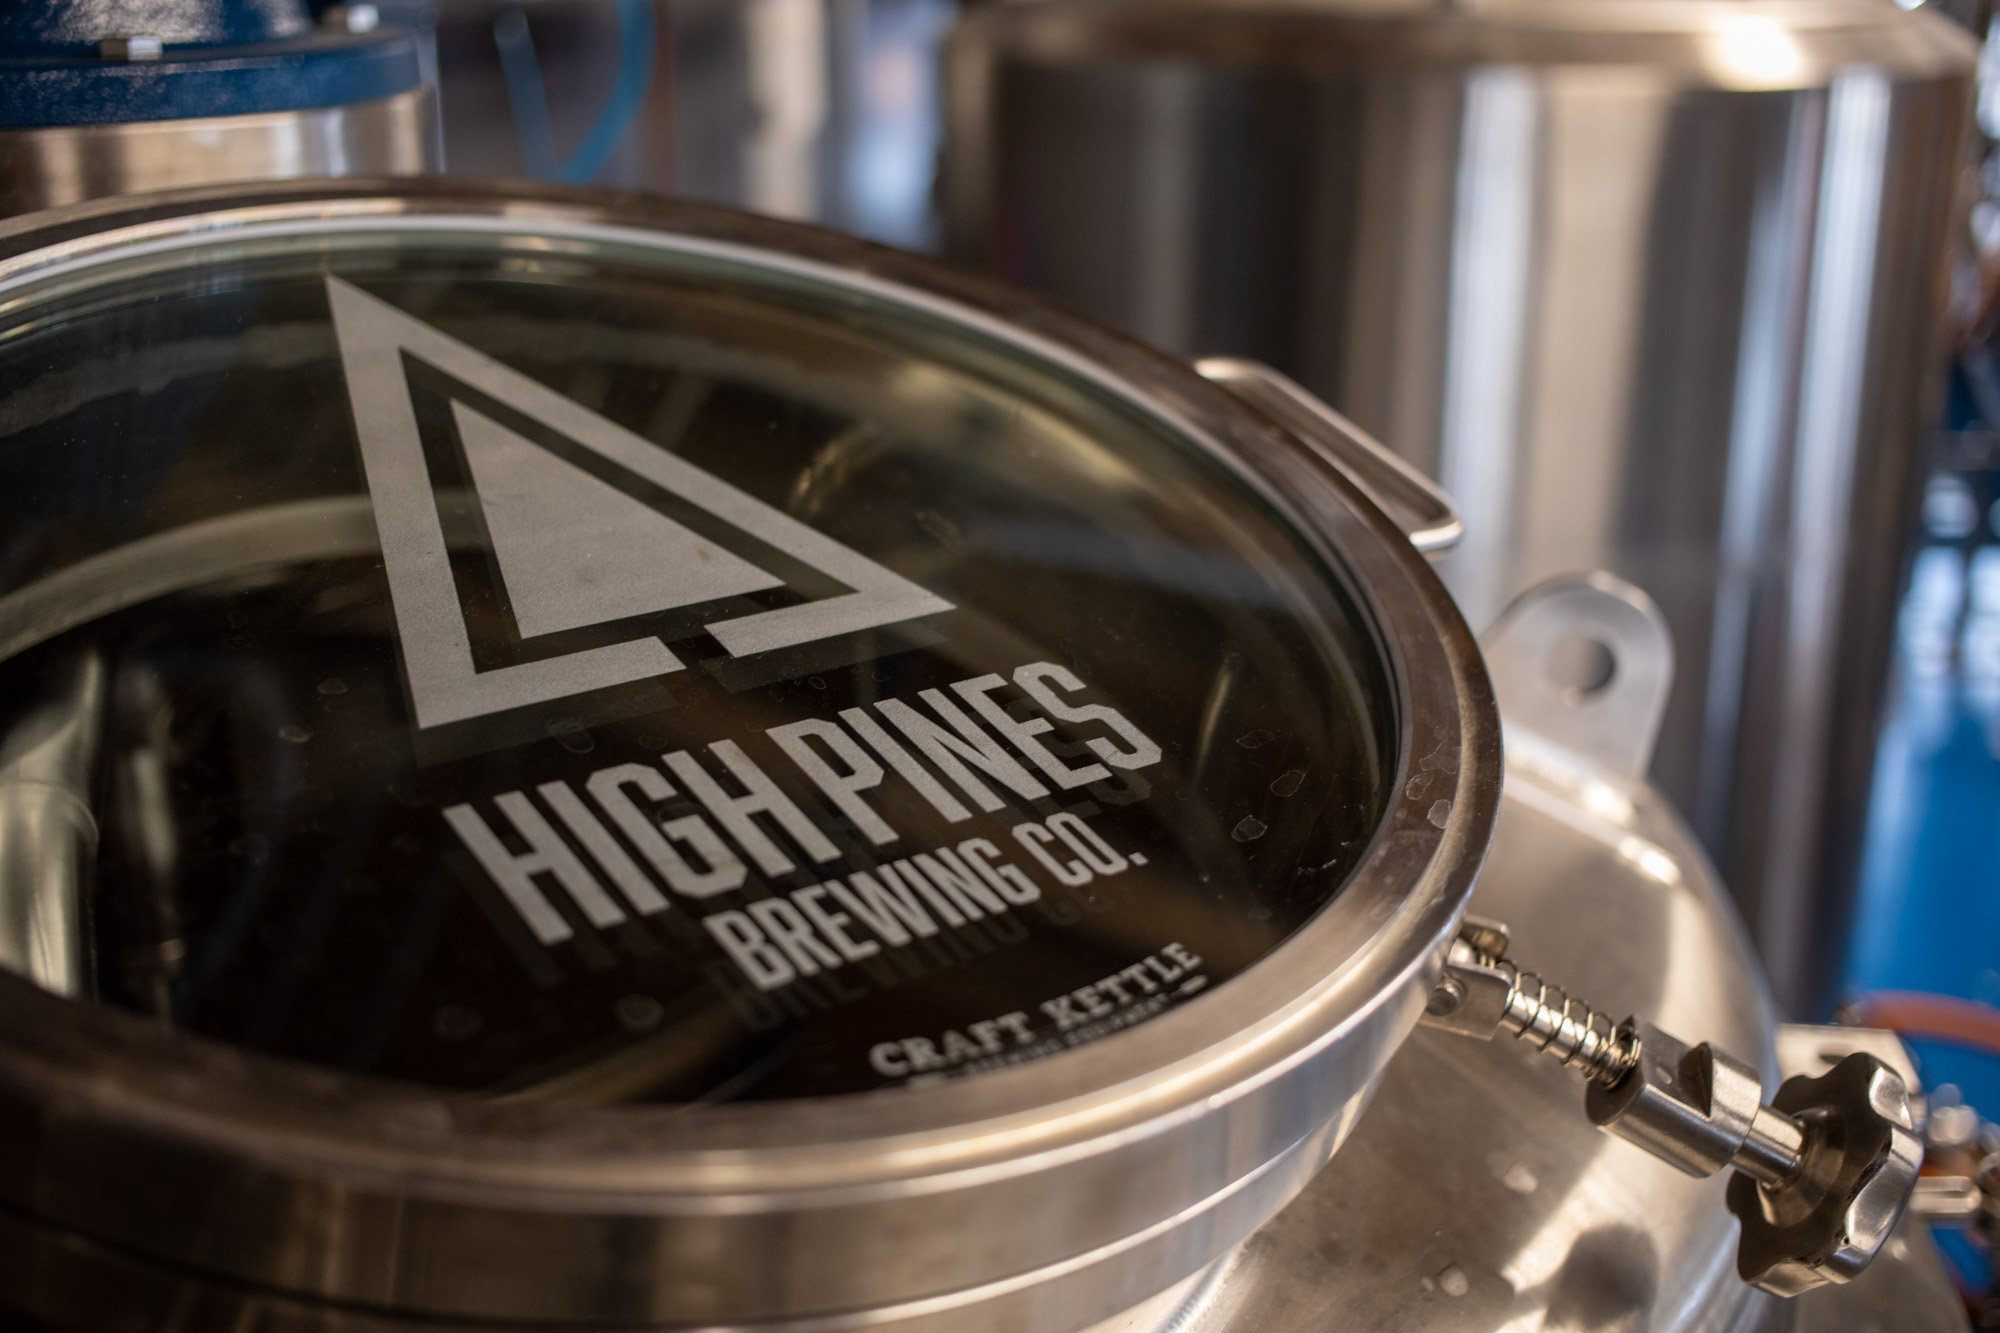 High Pines Brewing Company is set to open in Roseville, Minnesota, in February 2021 • Photo by Jordan Wipf